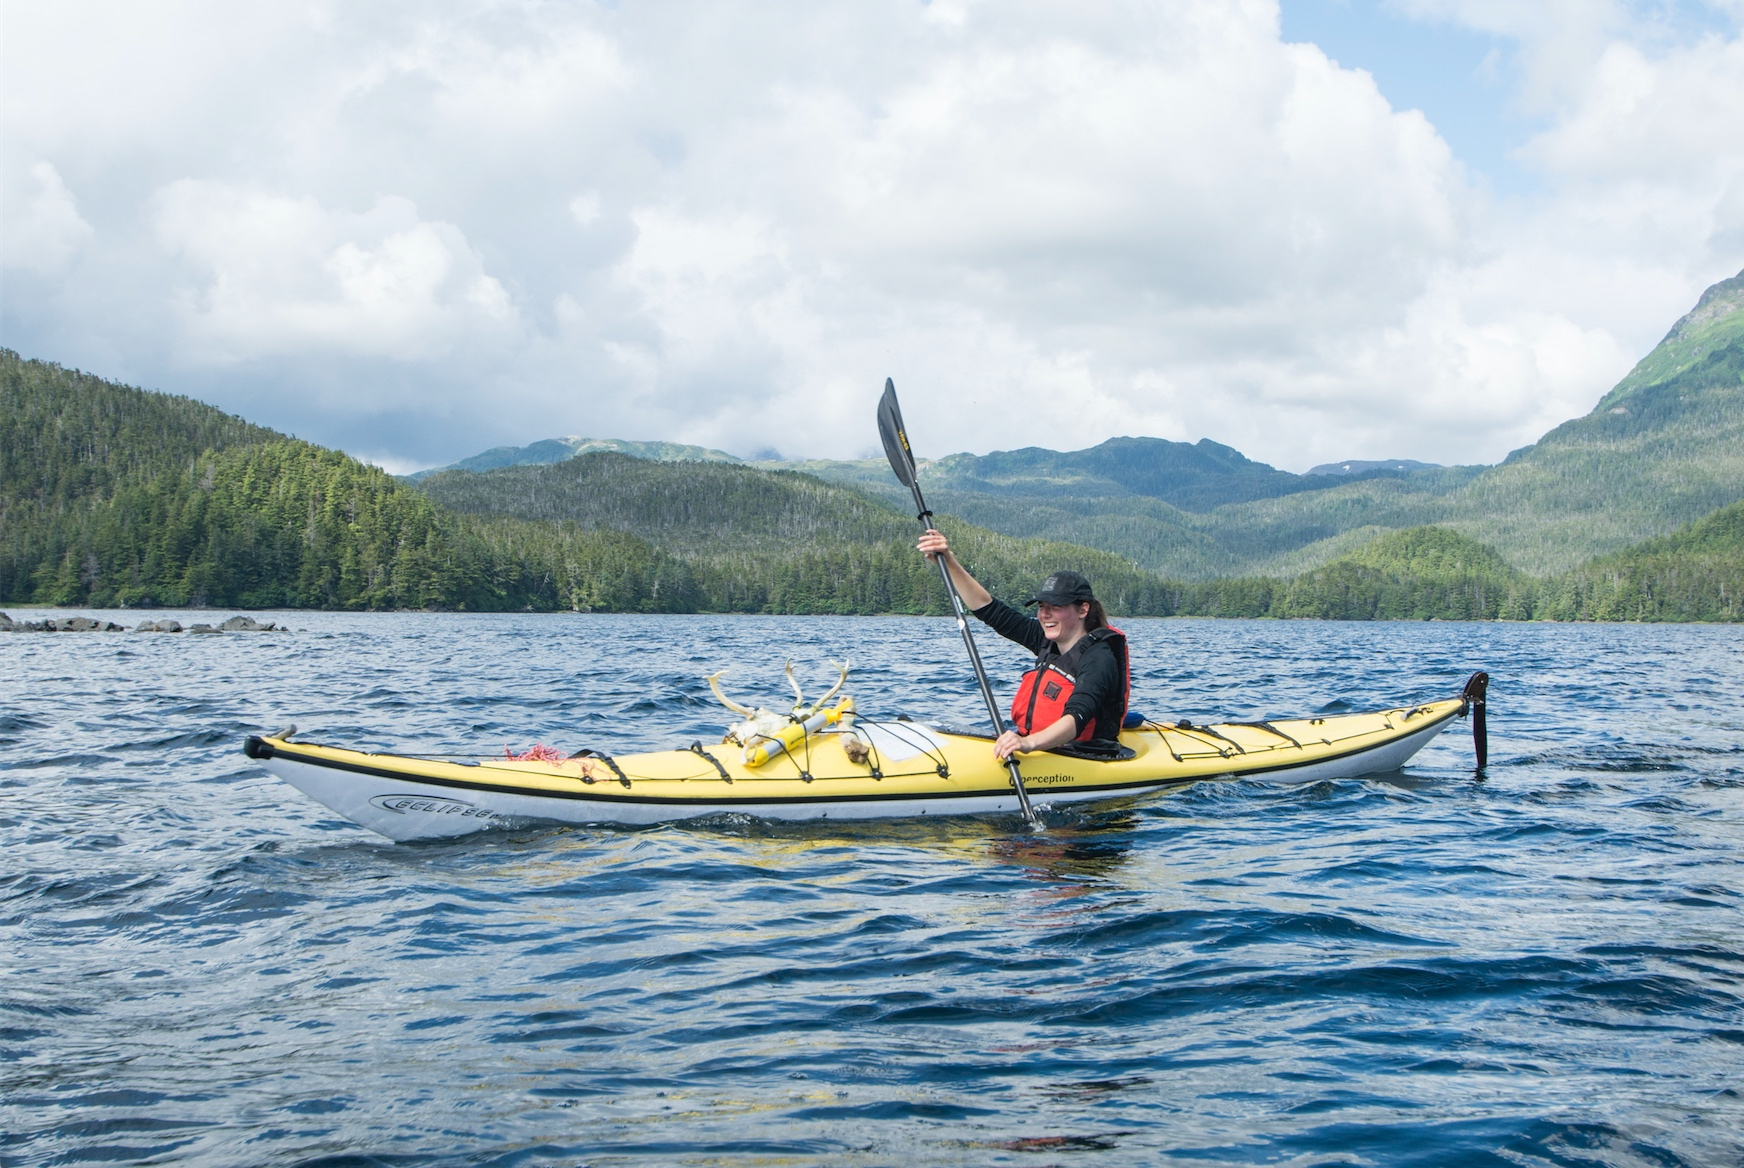 Voices of the Wilderness: An Artist's Perspective - Sitka Conservation Society